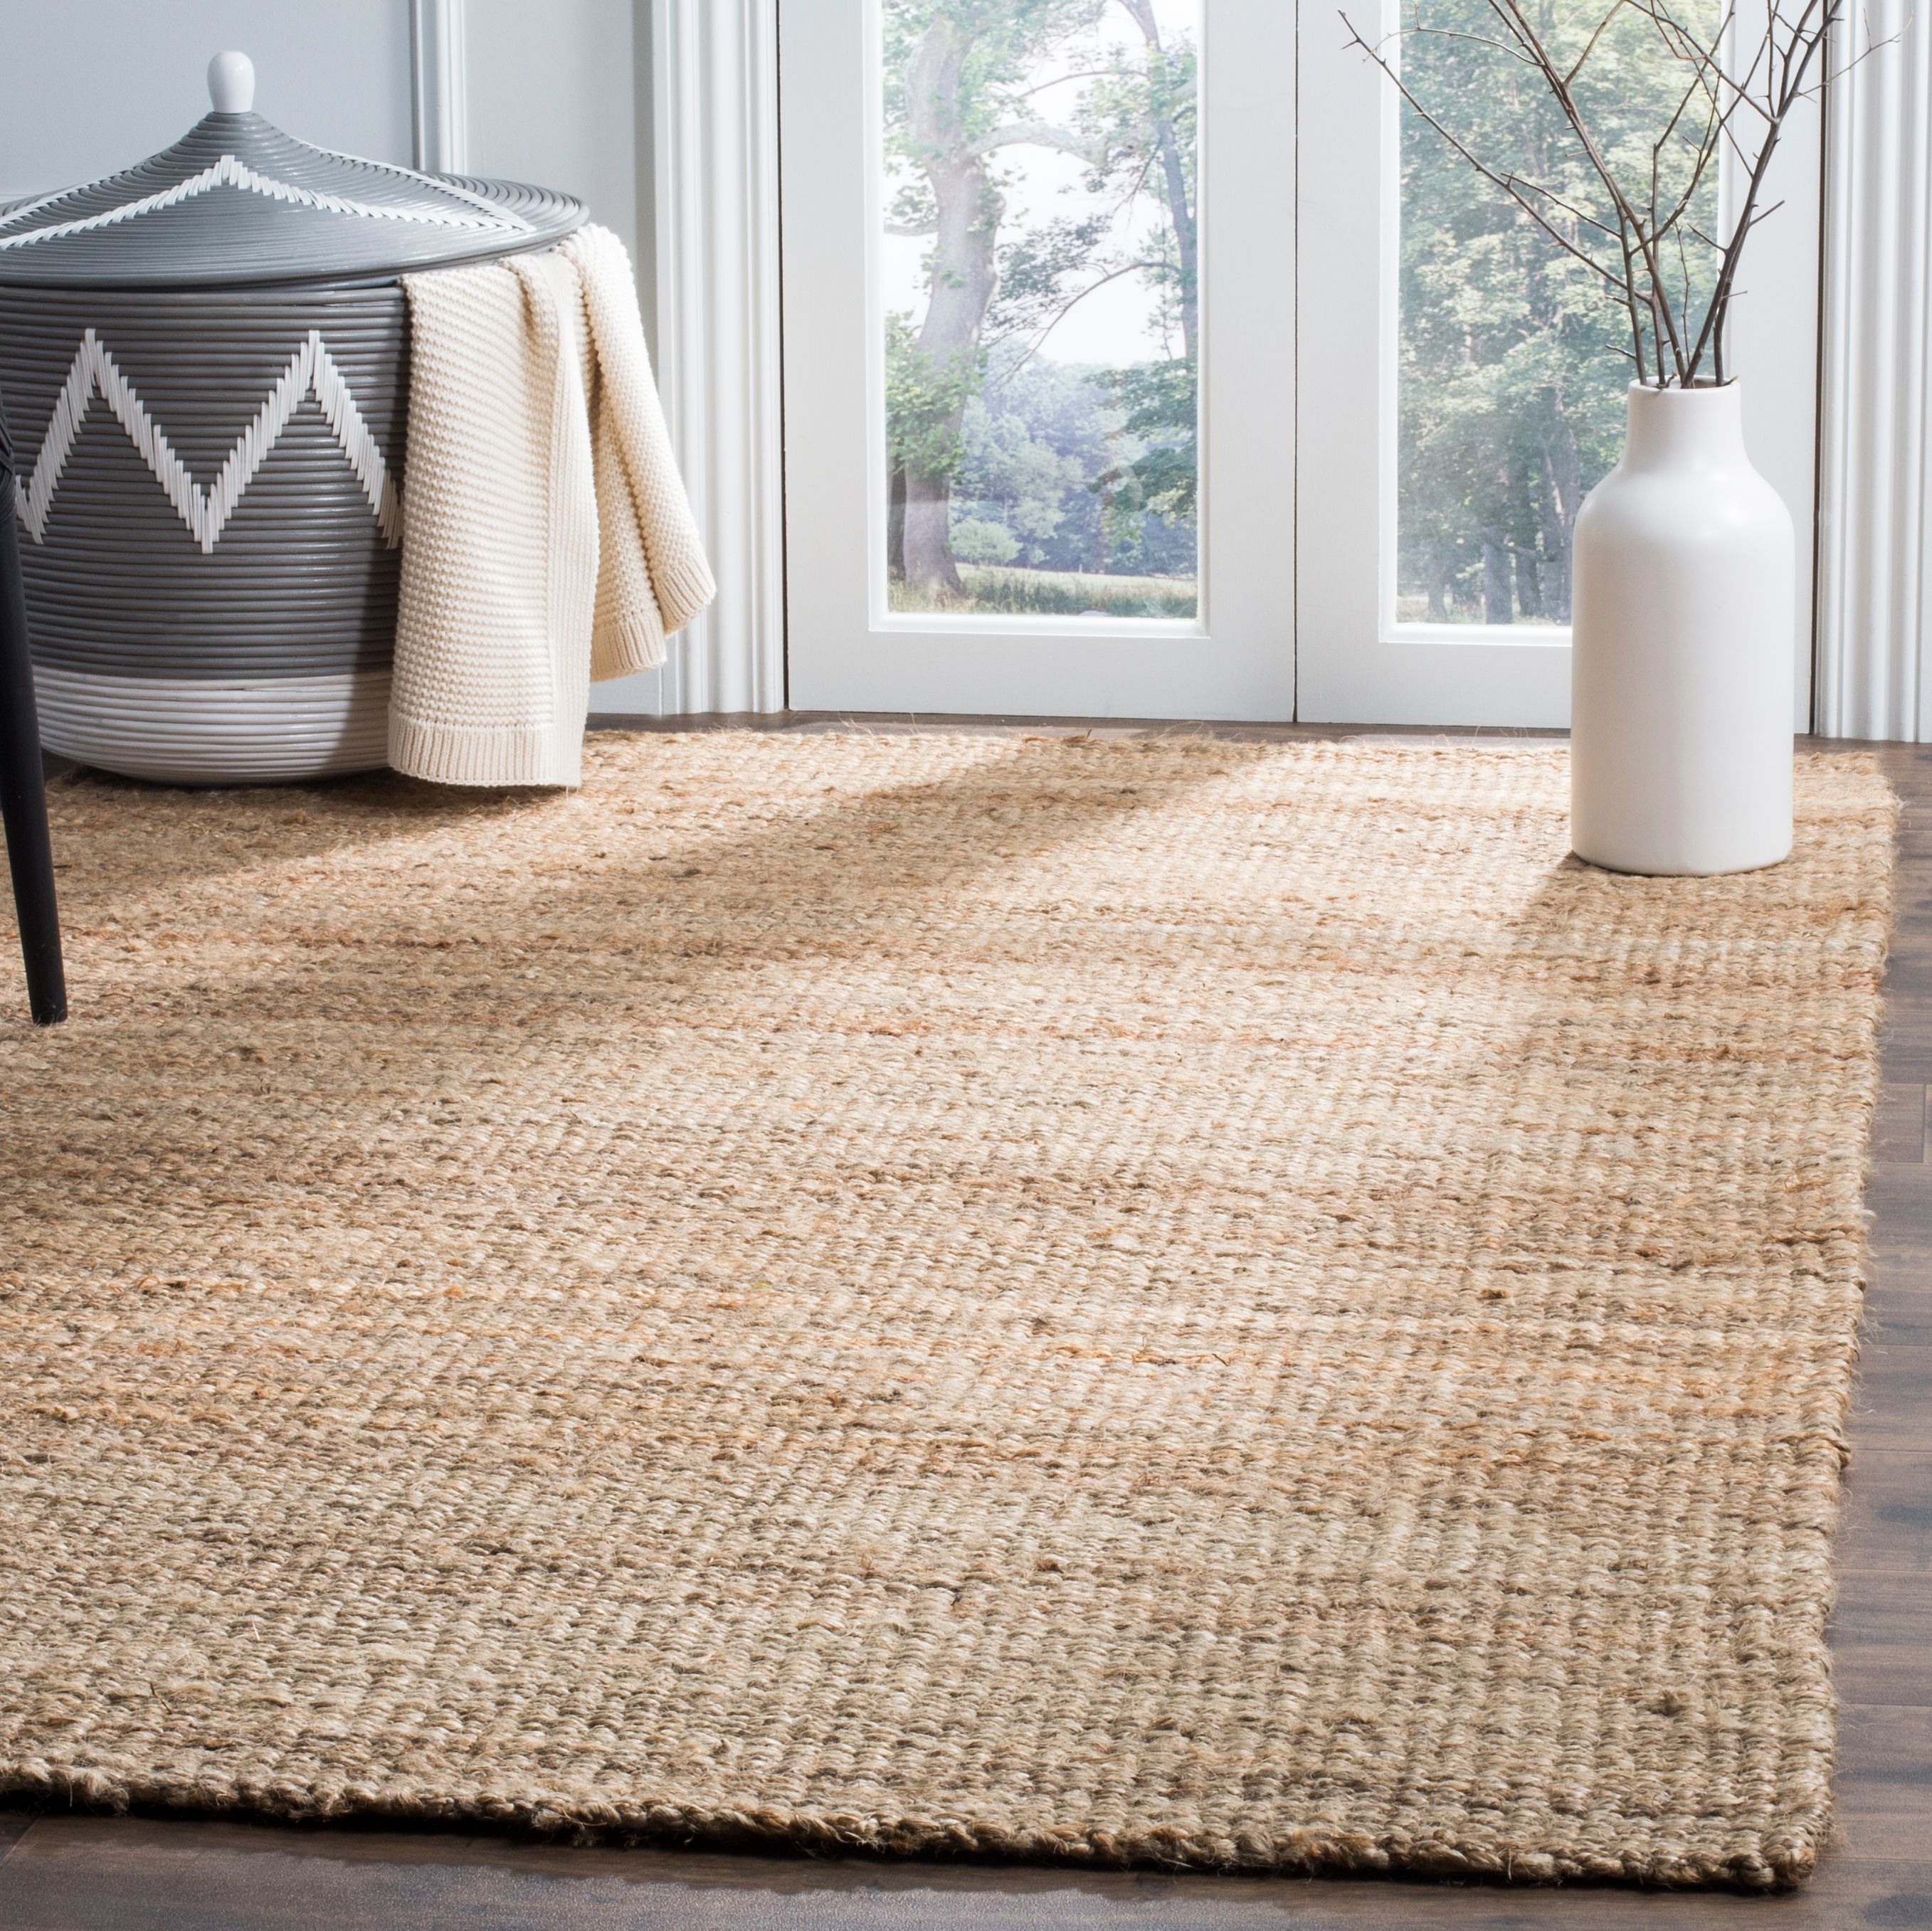 Safavieh Natural Fiber Jerald Braided Area Rug by Safavieh